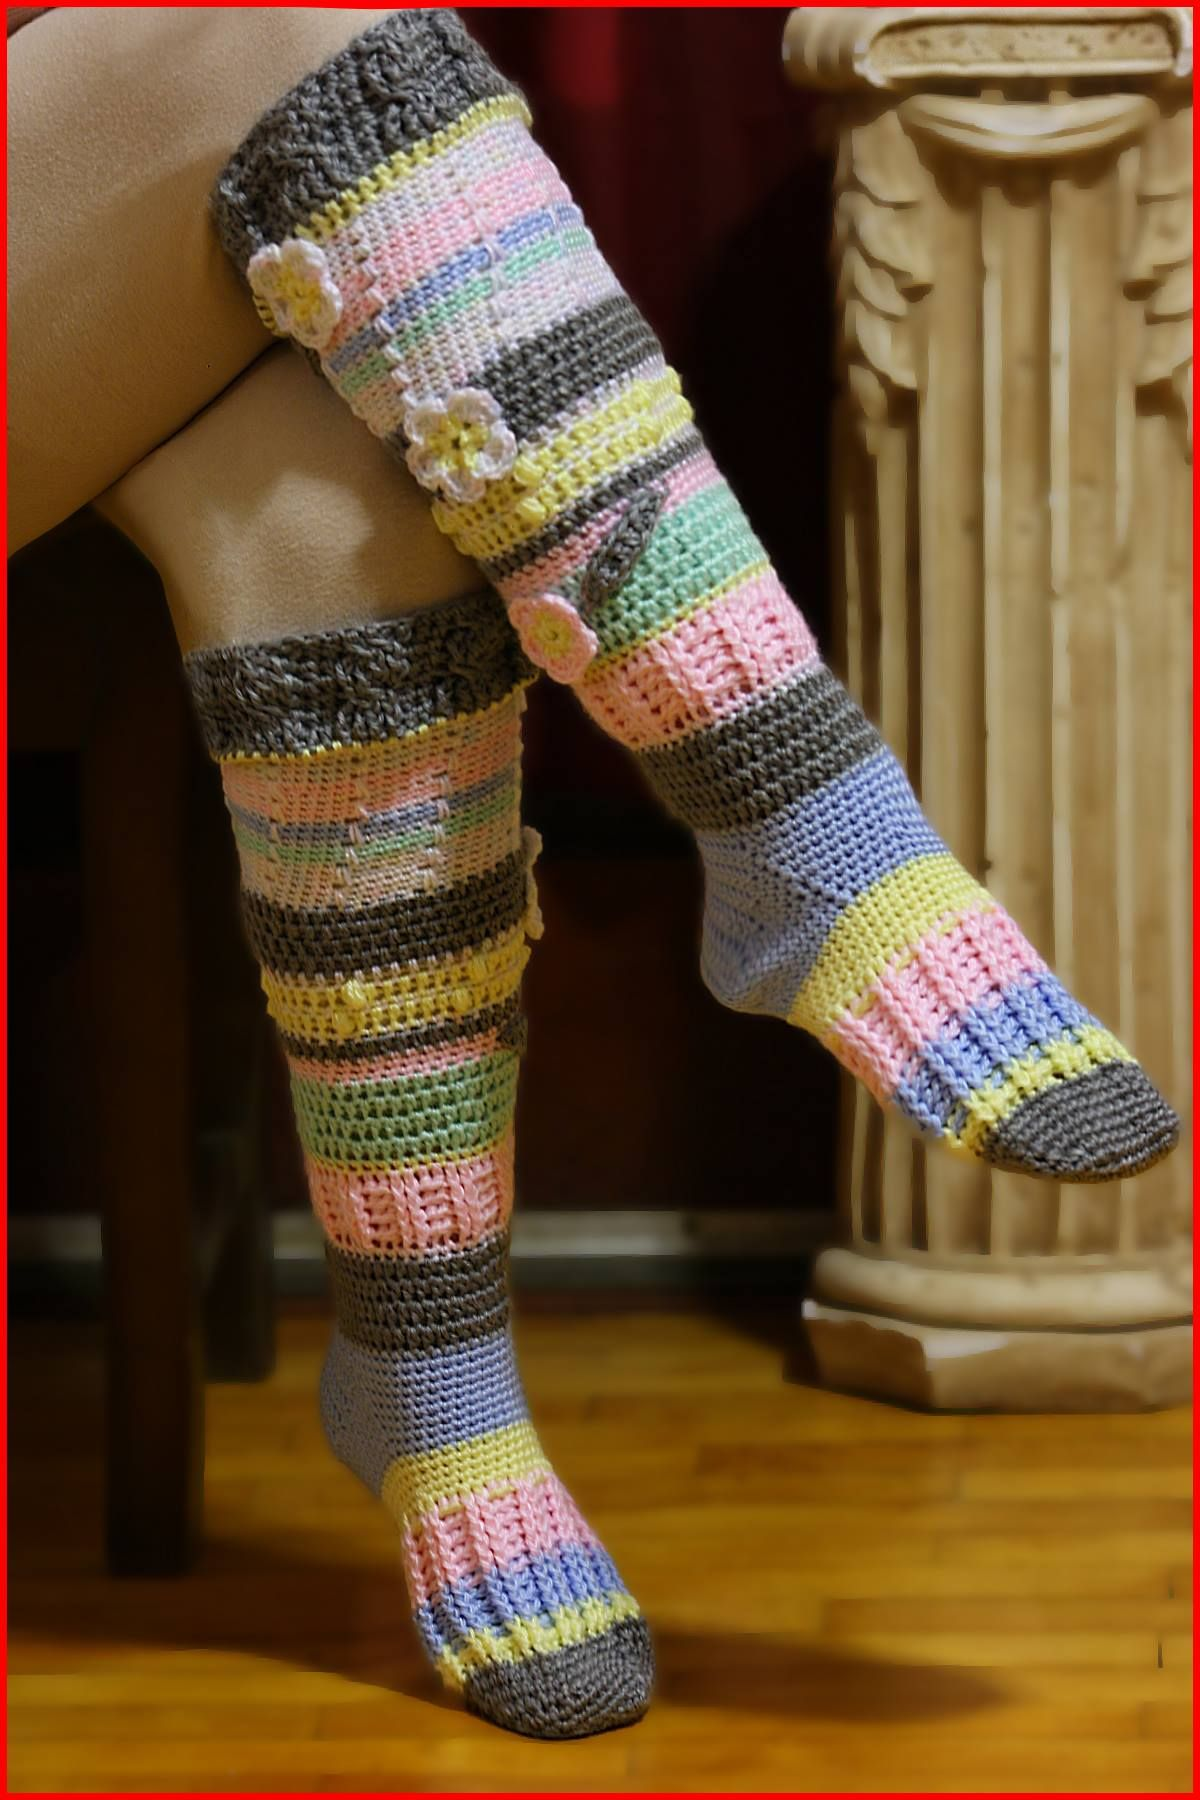 Knee high socks by nadia fuad free crochet pattern yarnutopia knee high socks by nadia fuad free crochet pattern yarnutopia bankloansurffo Image collections